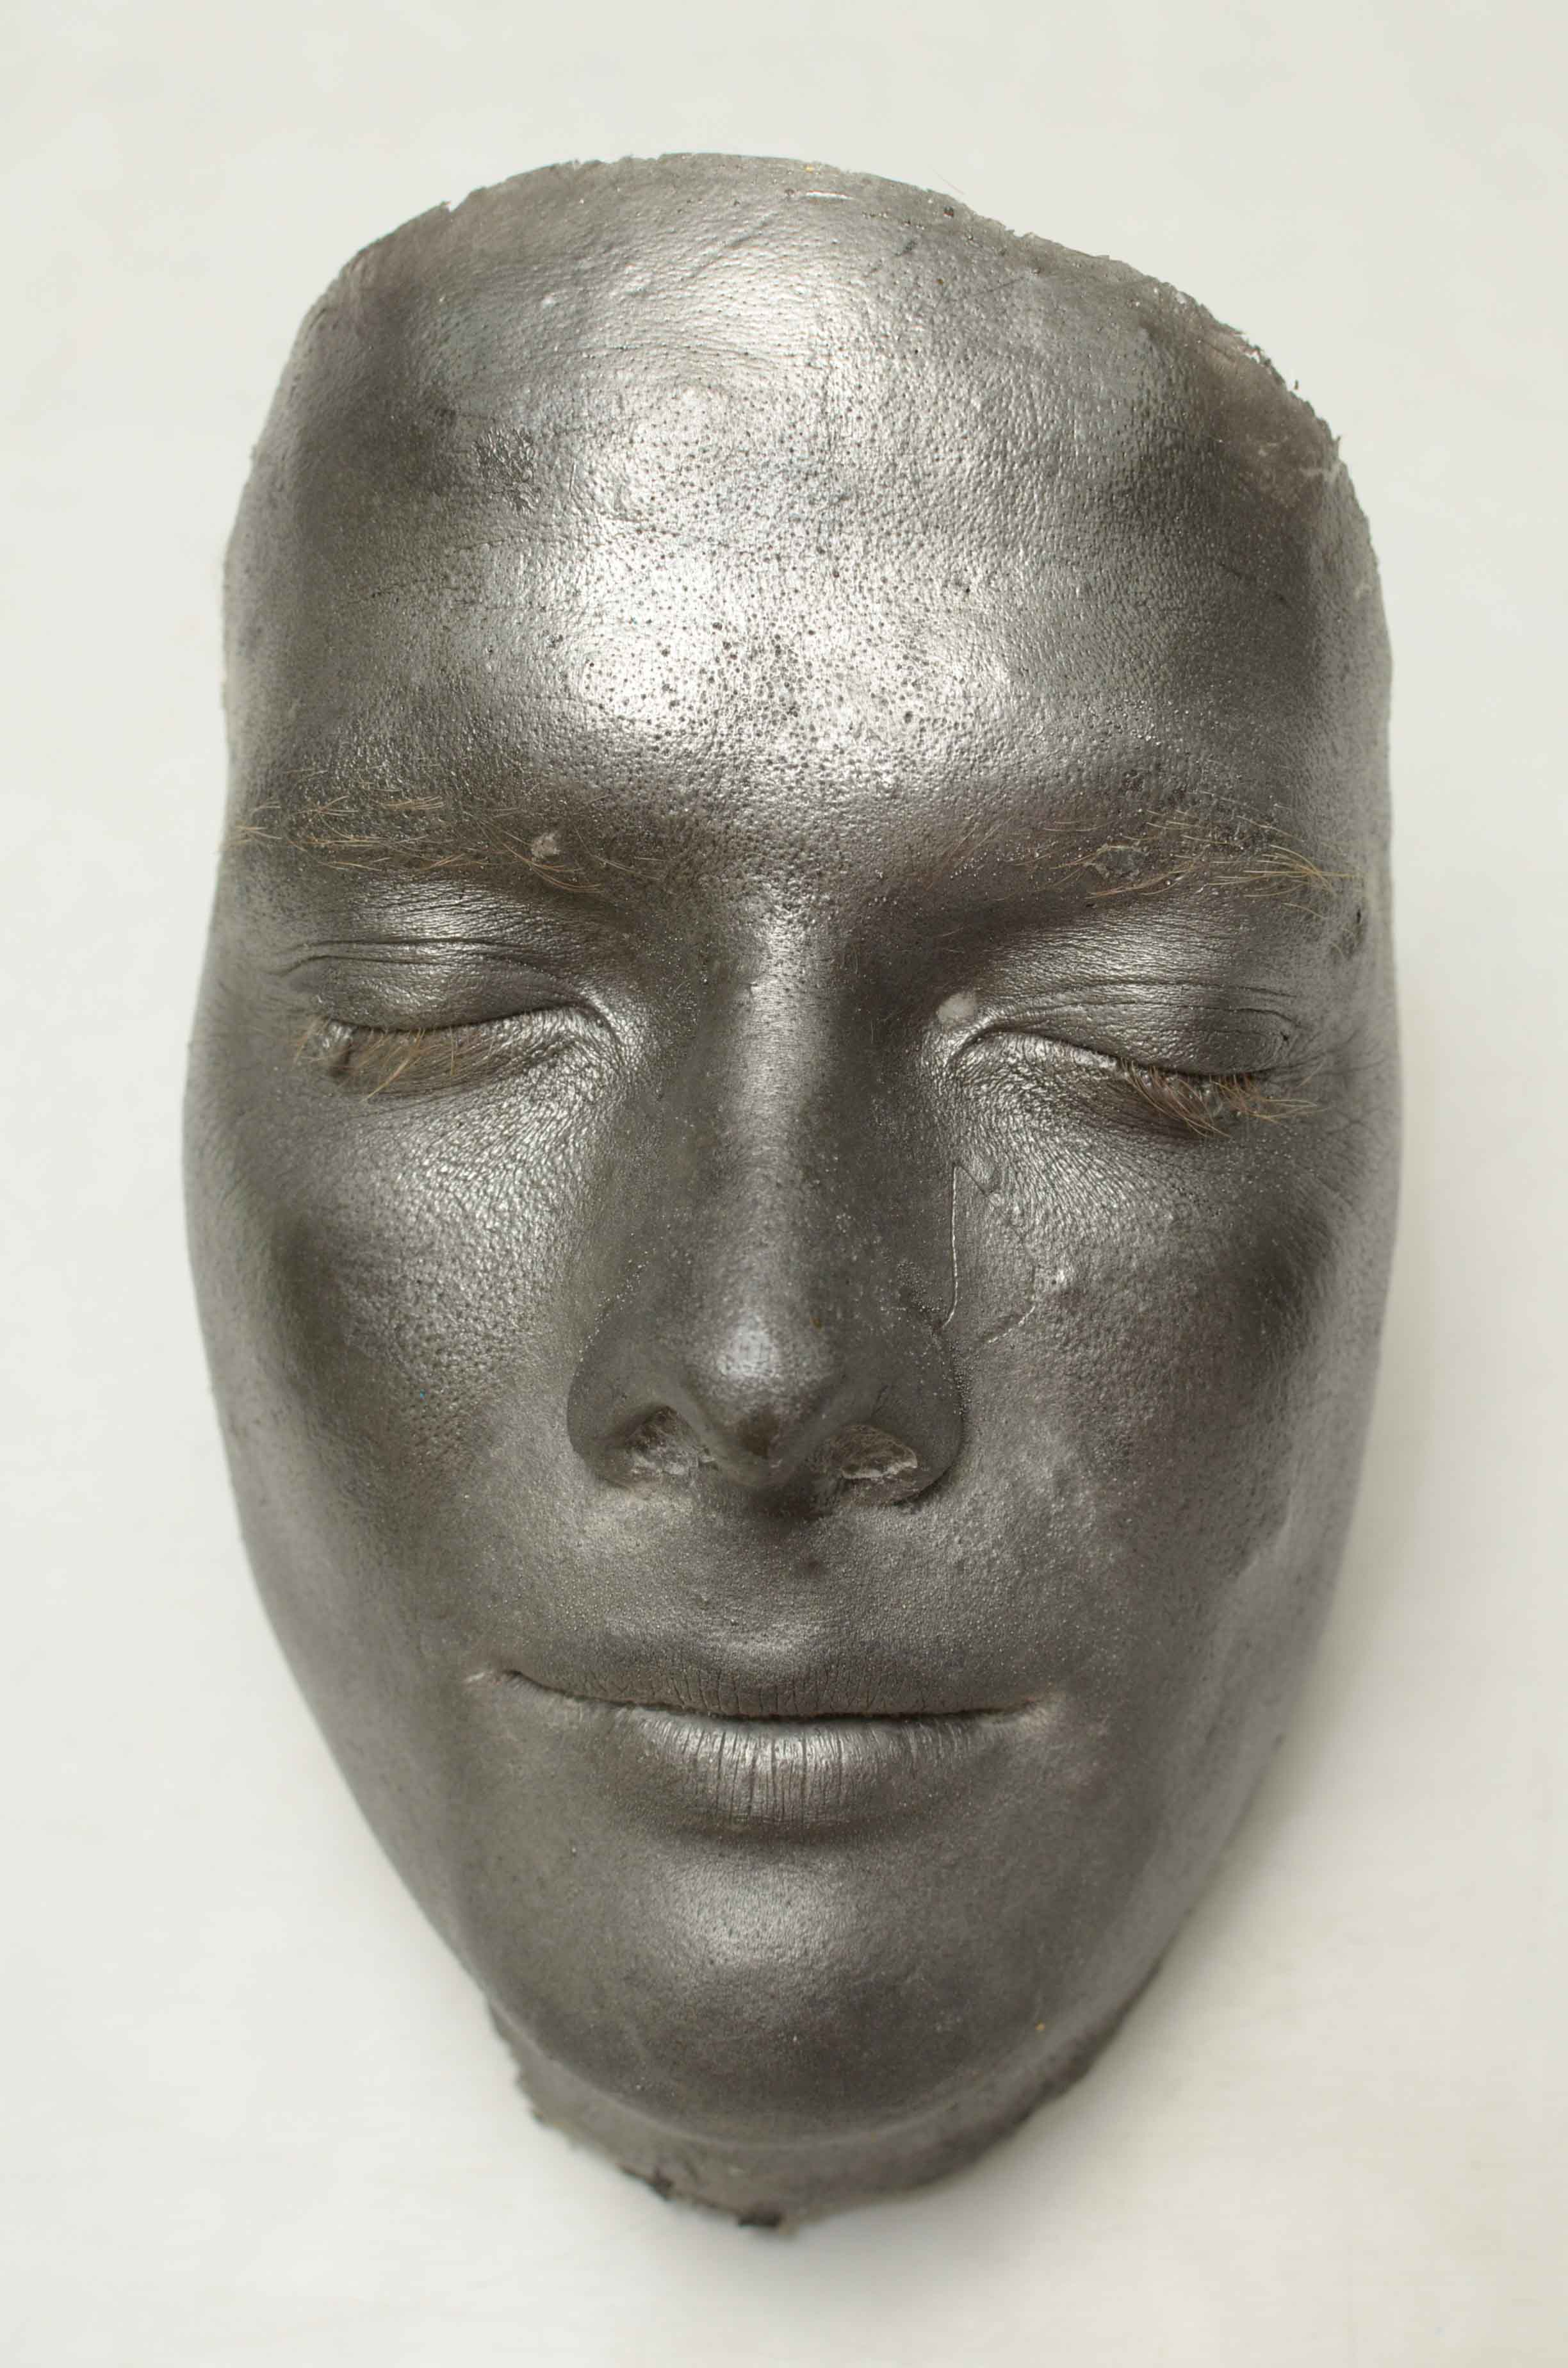 Frontal view of face cast.